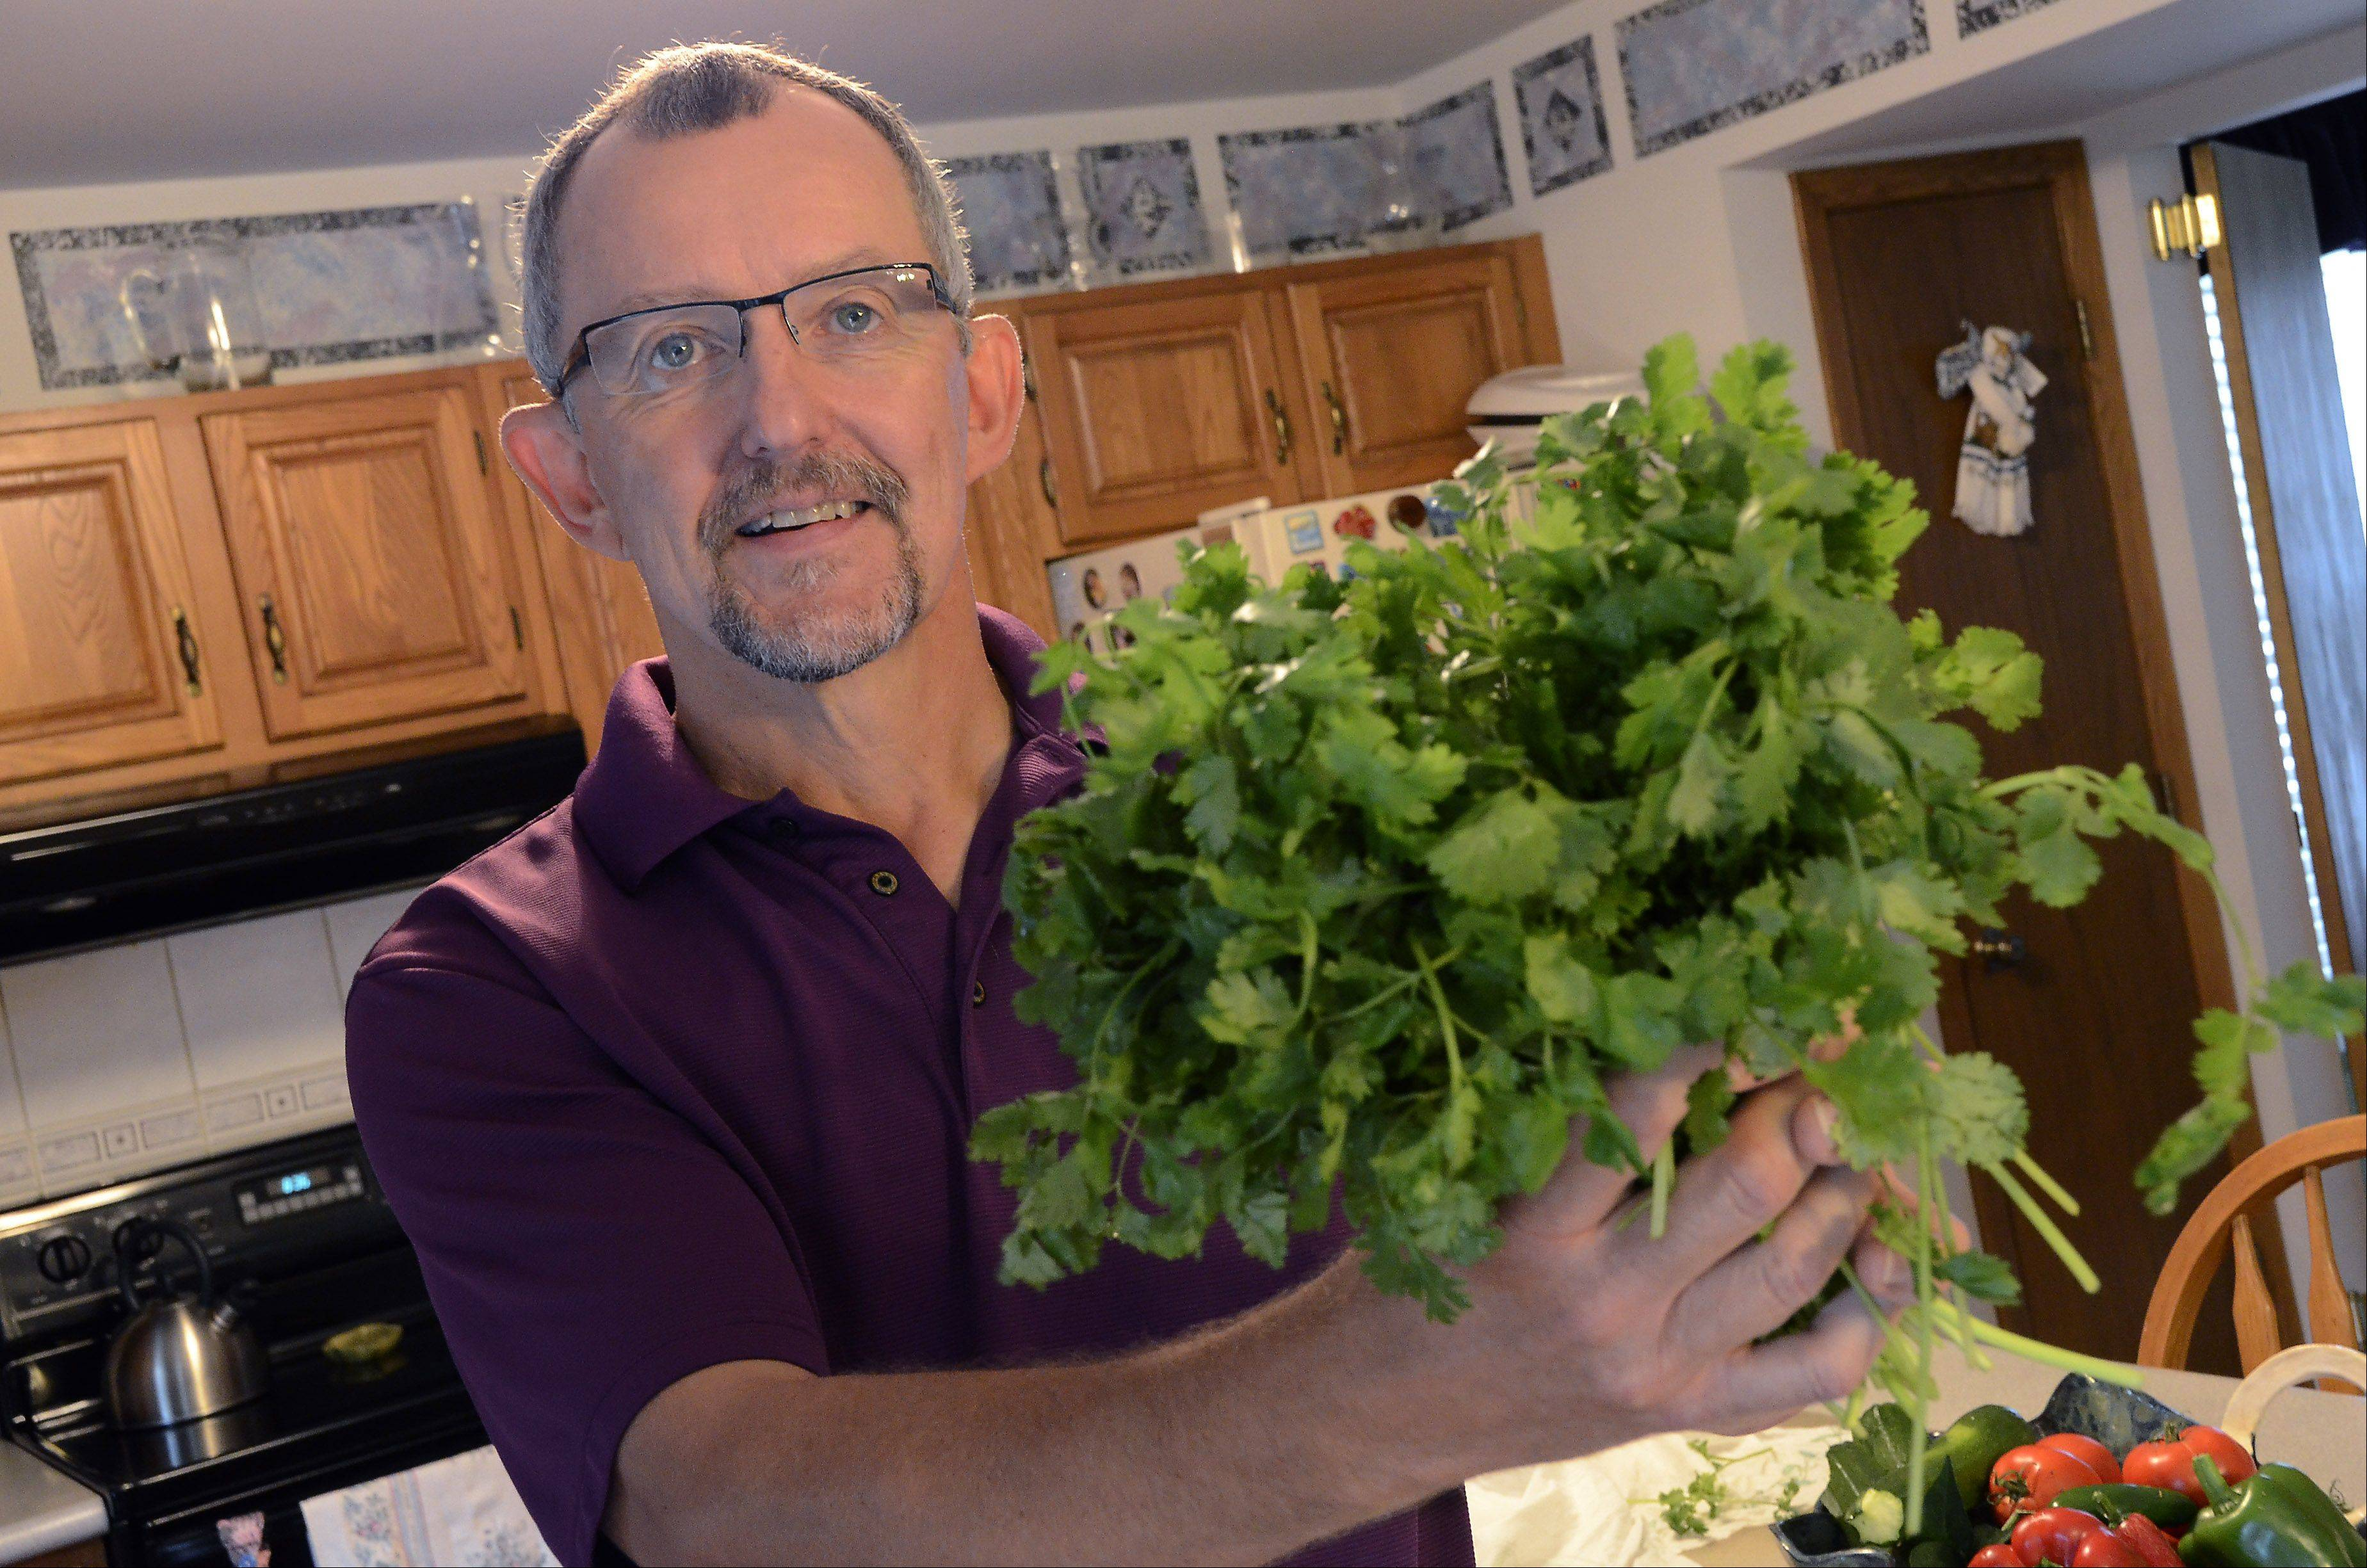 Bill Zars/bzars@dailyherald.comCook of the year contestant Joe Moninski of Arlington Heights likes to use fresh ingredients in his recipes. His favorite item is cilantro.